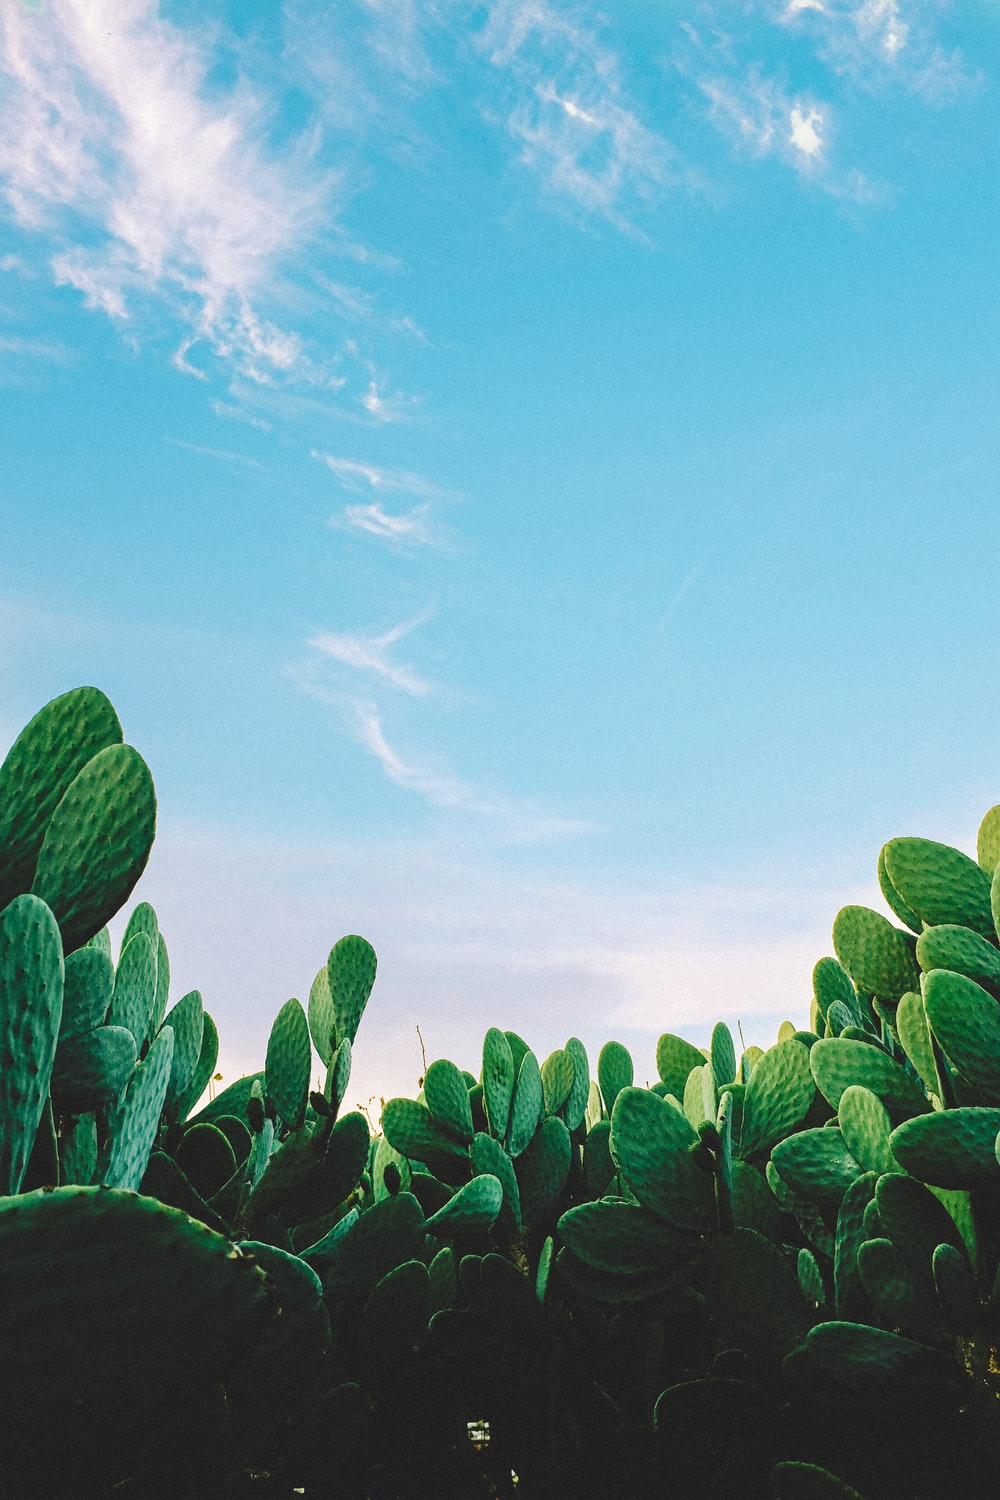 Cactus Wallpapers Free Hd Download 500 Hq Unsplash